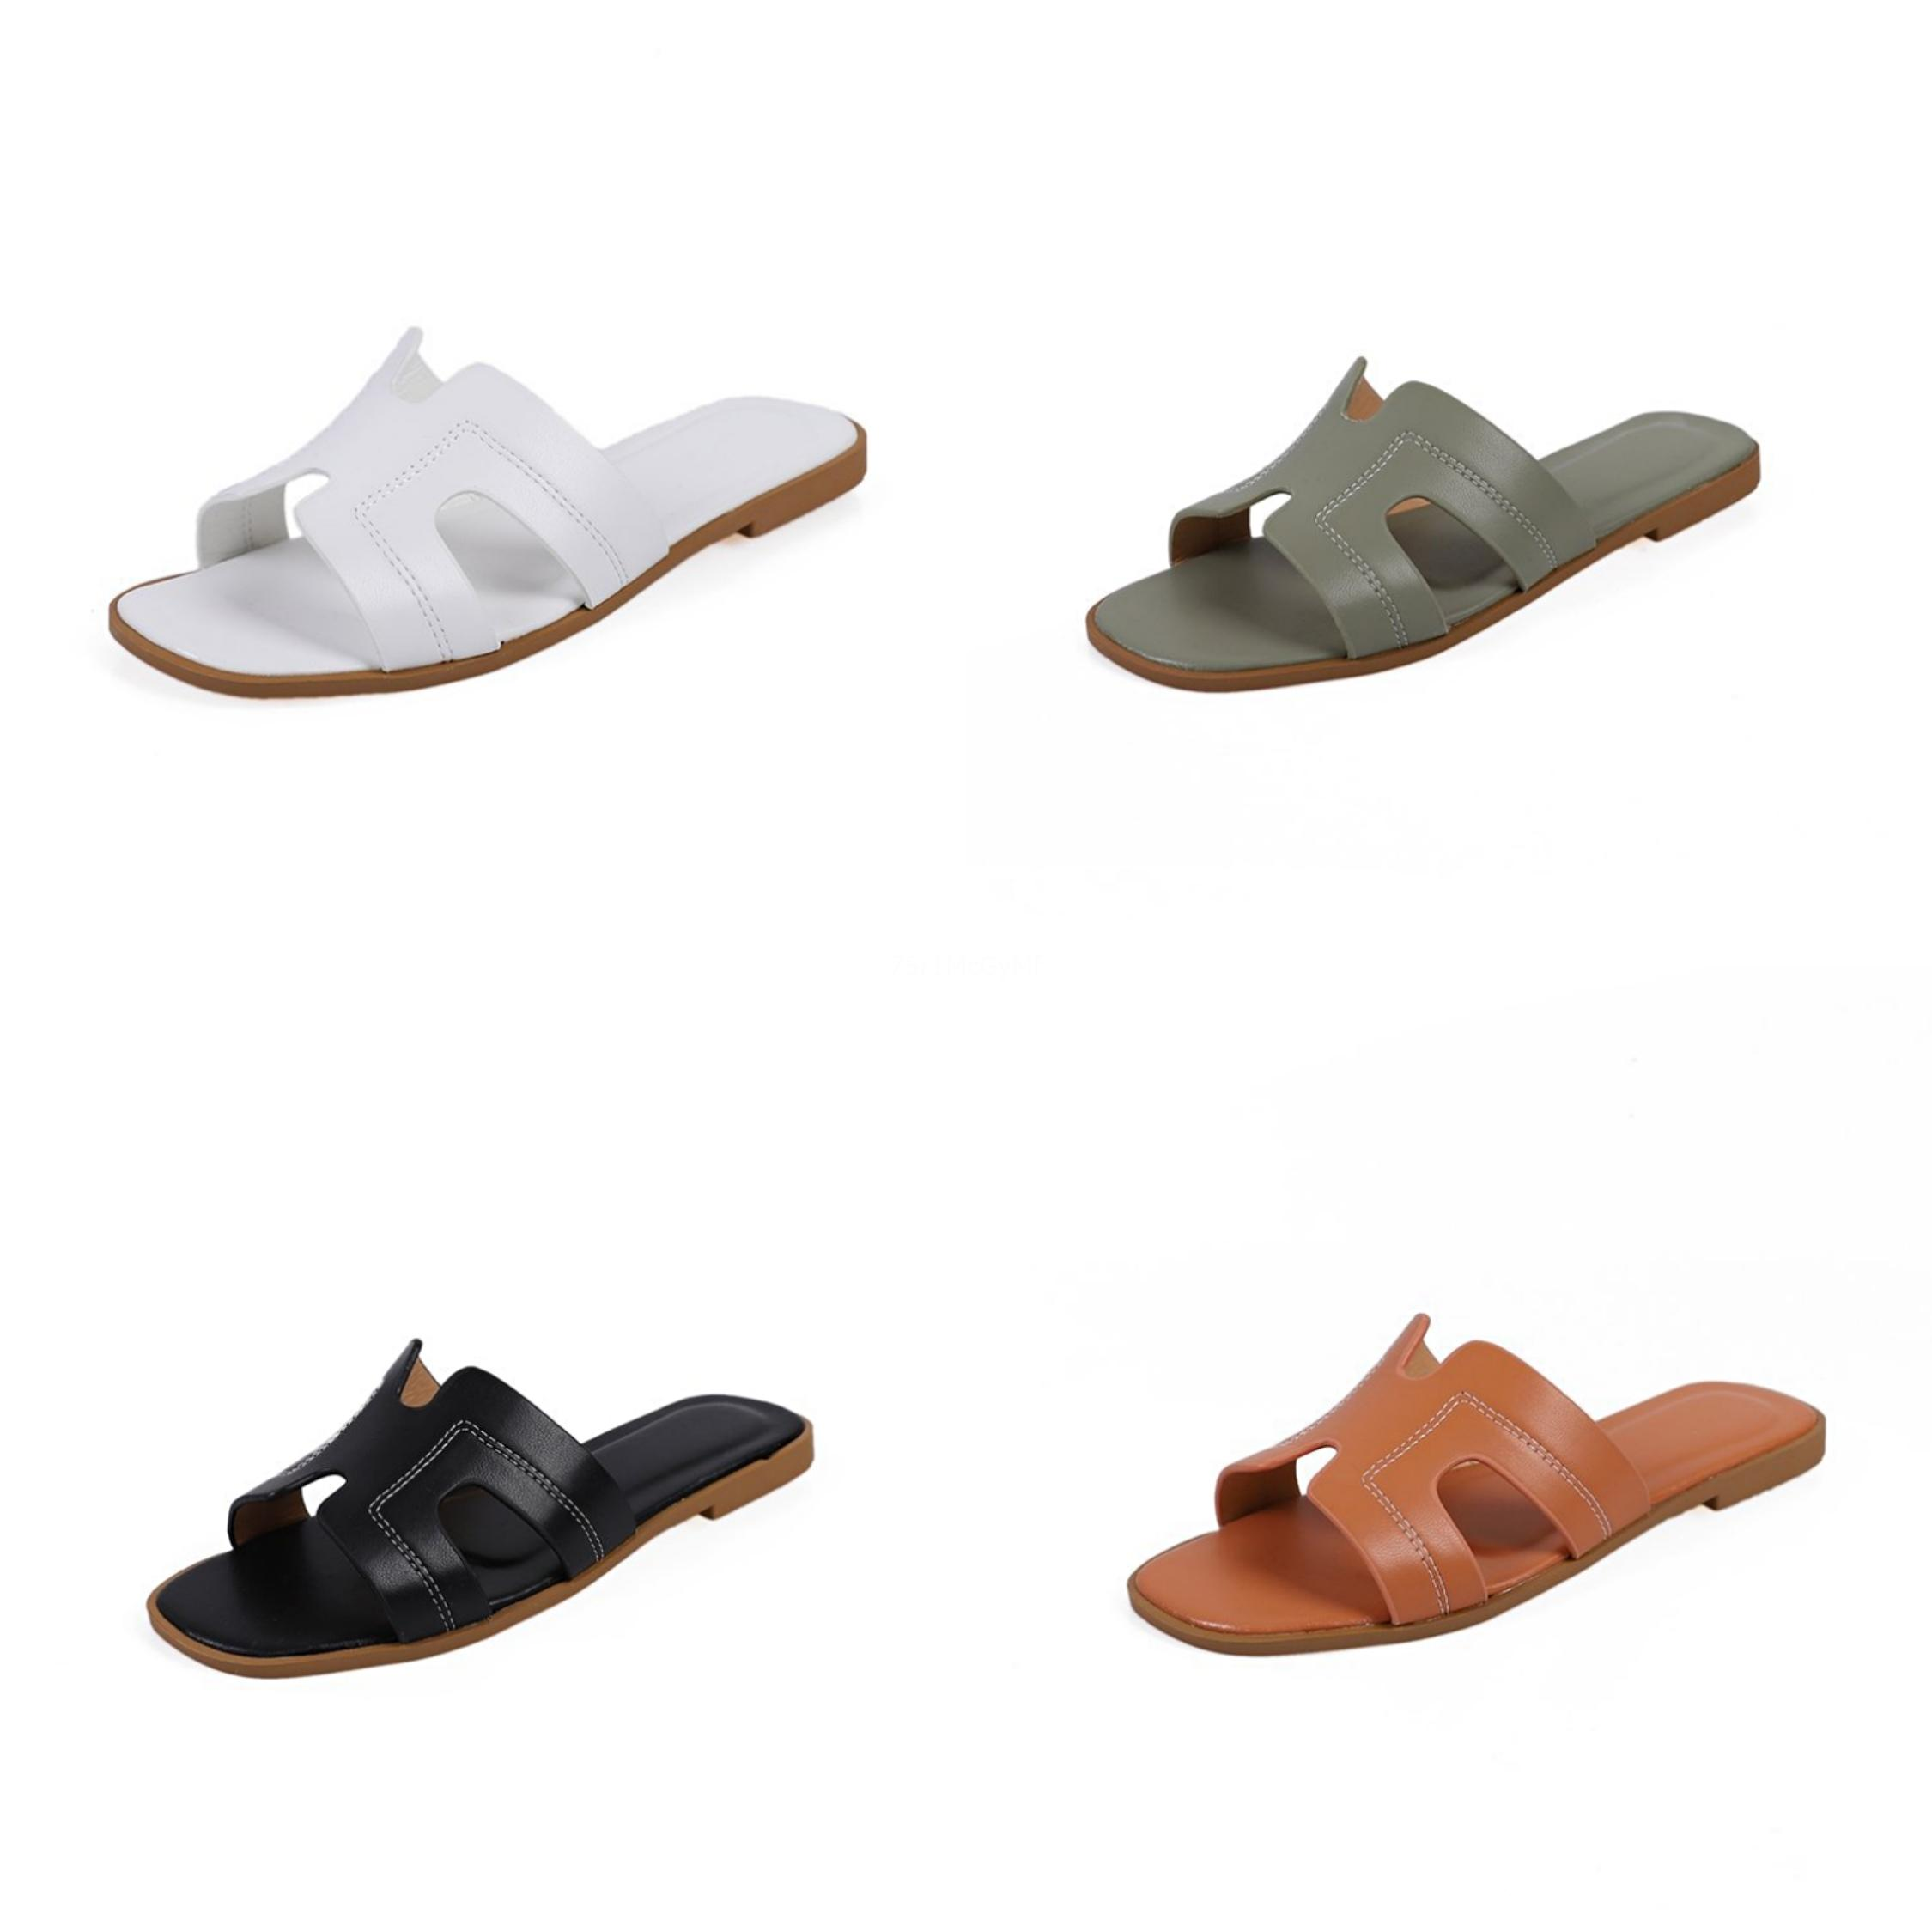 2020 Summer Slippers New Style H Beach Slippers Colorful Thin Belt Flat Bottom Fashion Slippers For Boys Girls Shoes#852